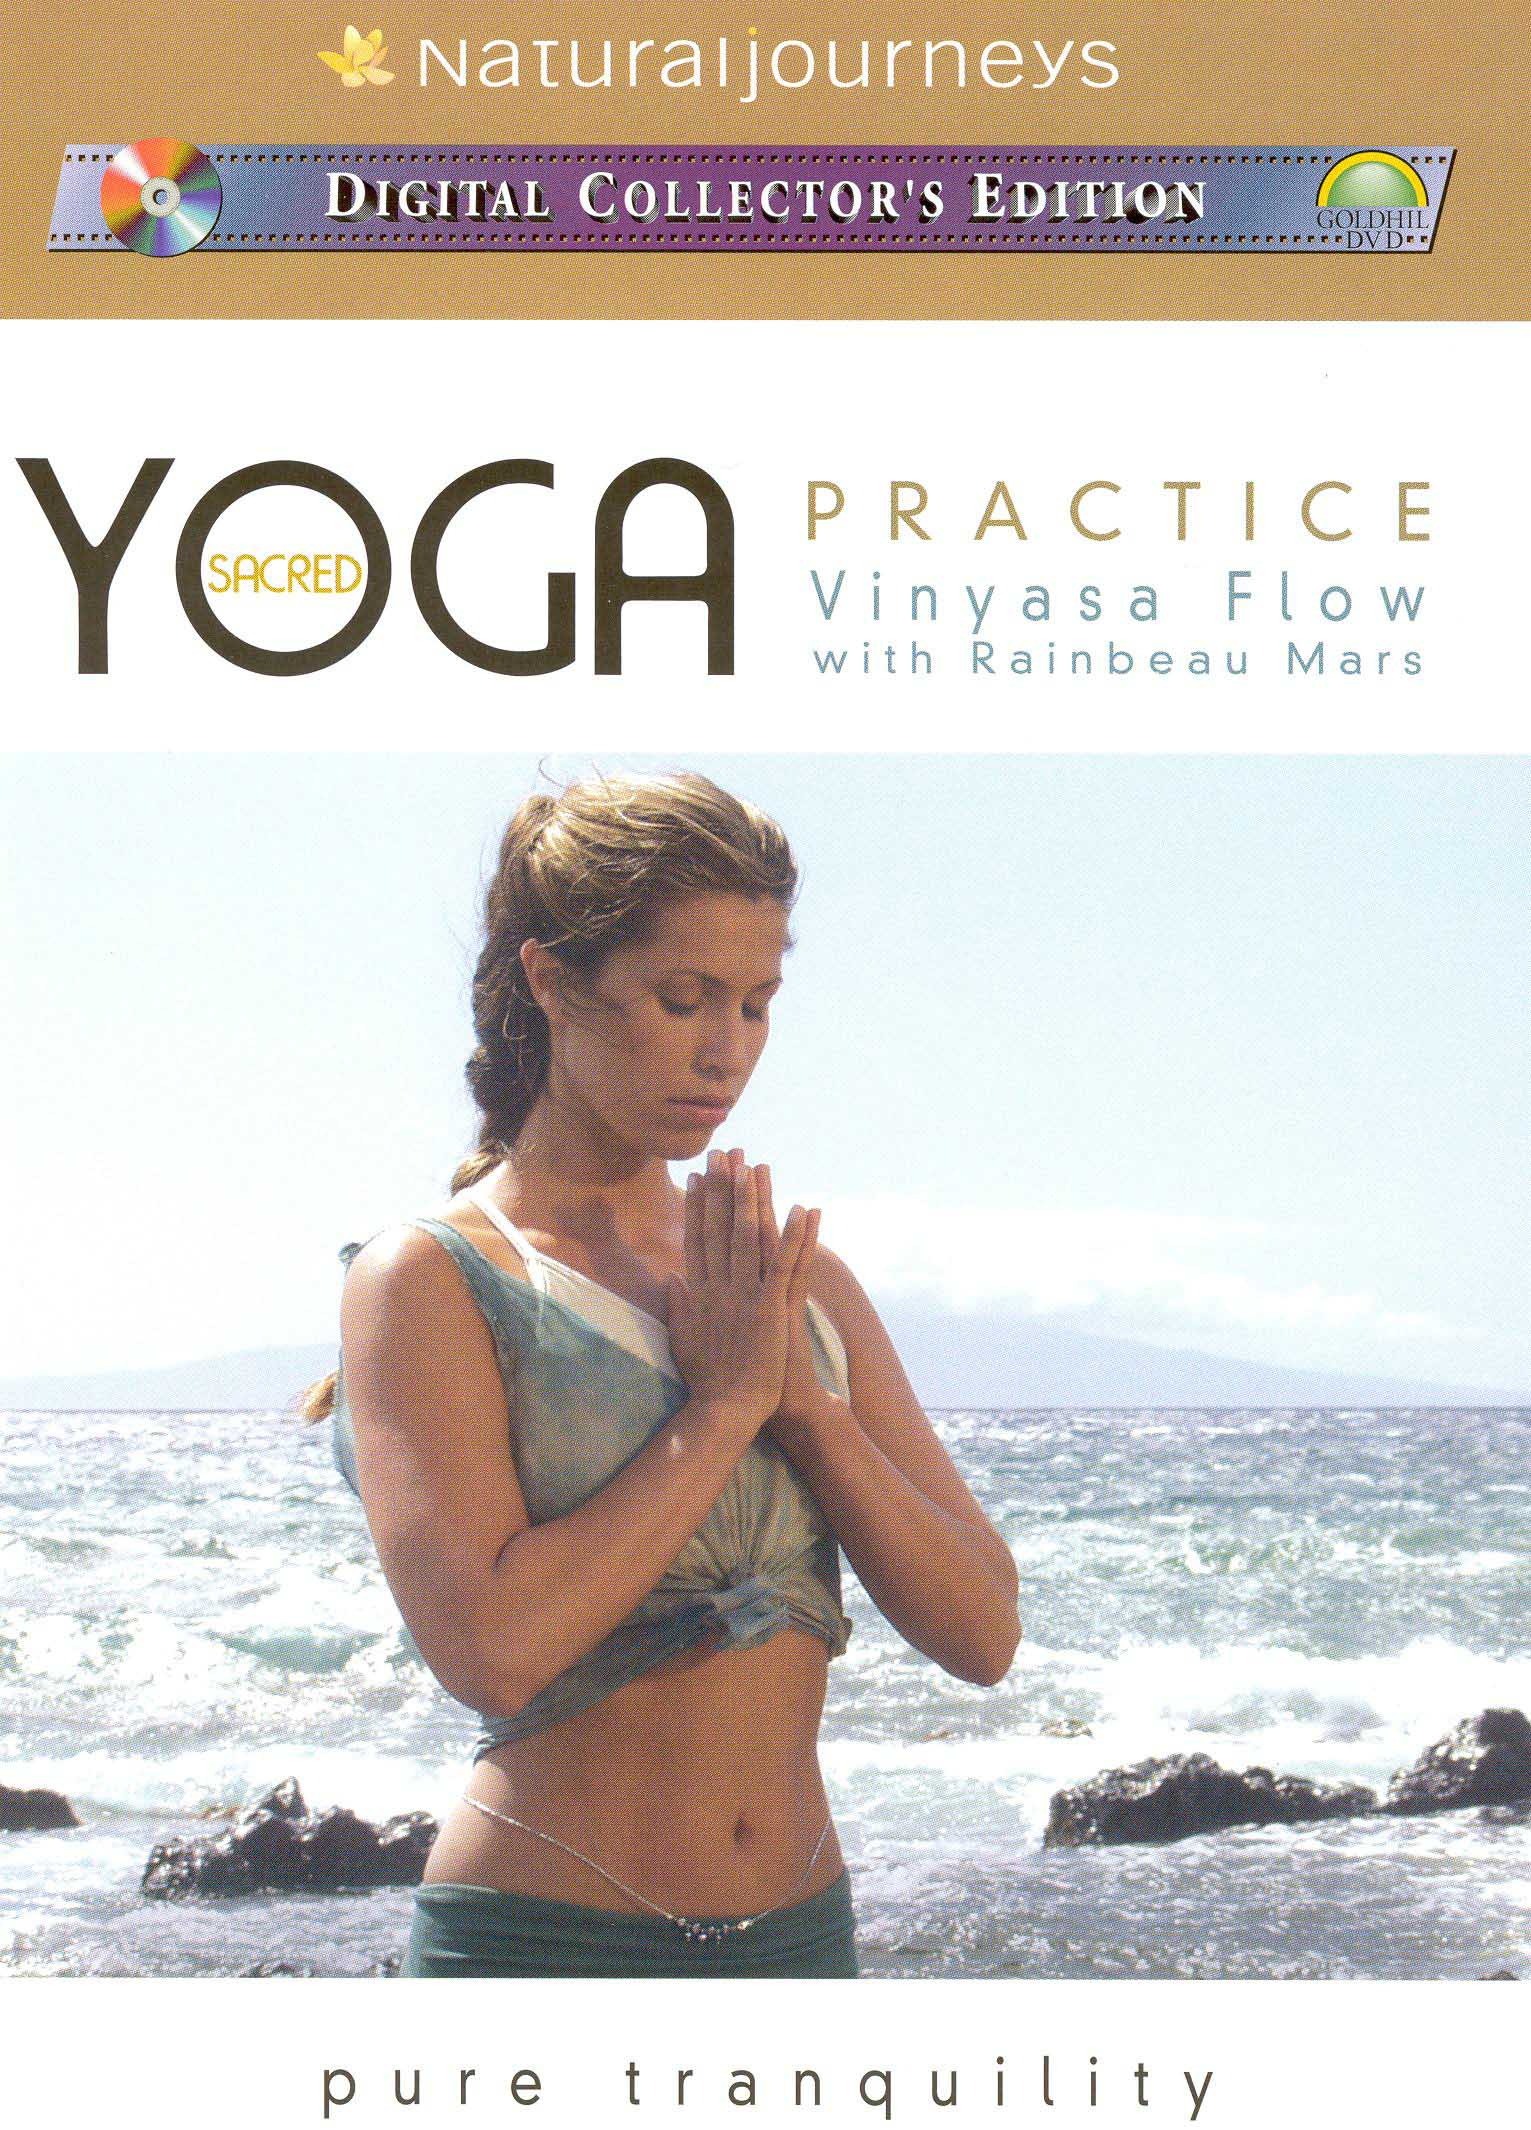 Sacred Yoga Practice: Vinyasa Flow - Pure Tranquility